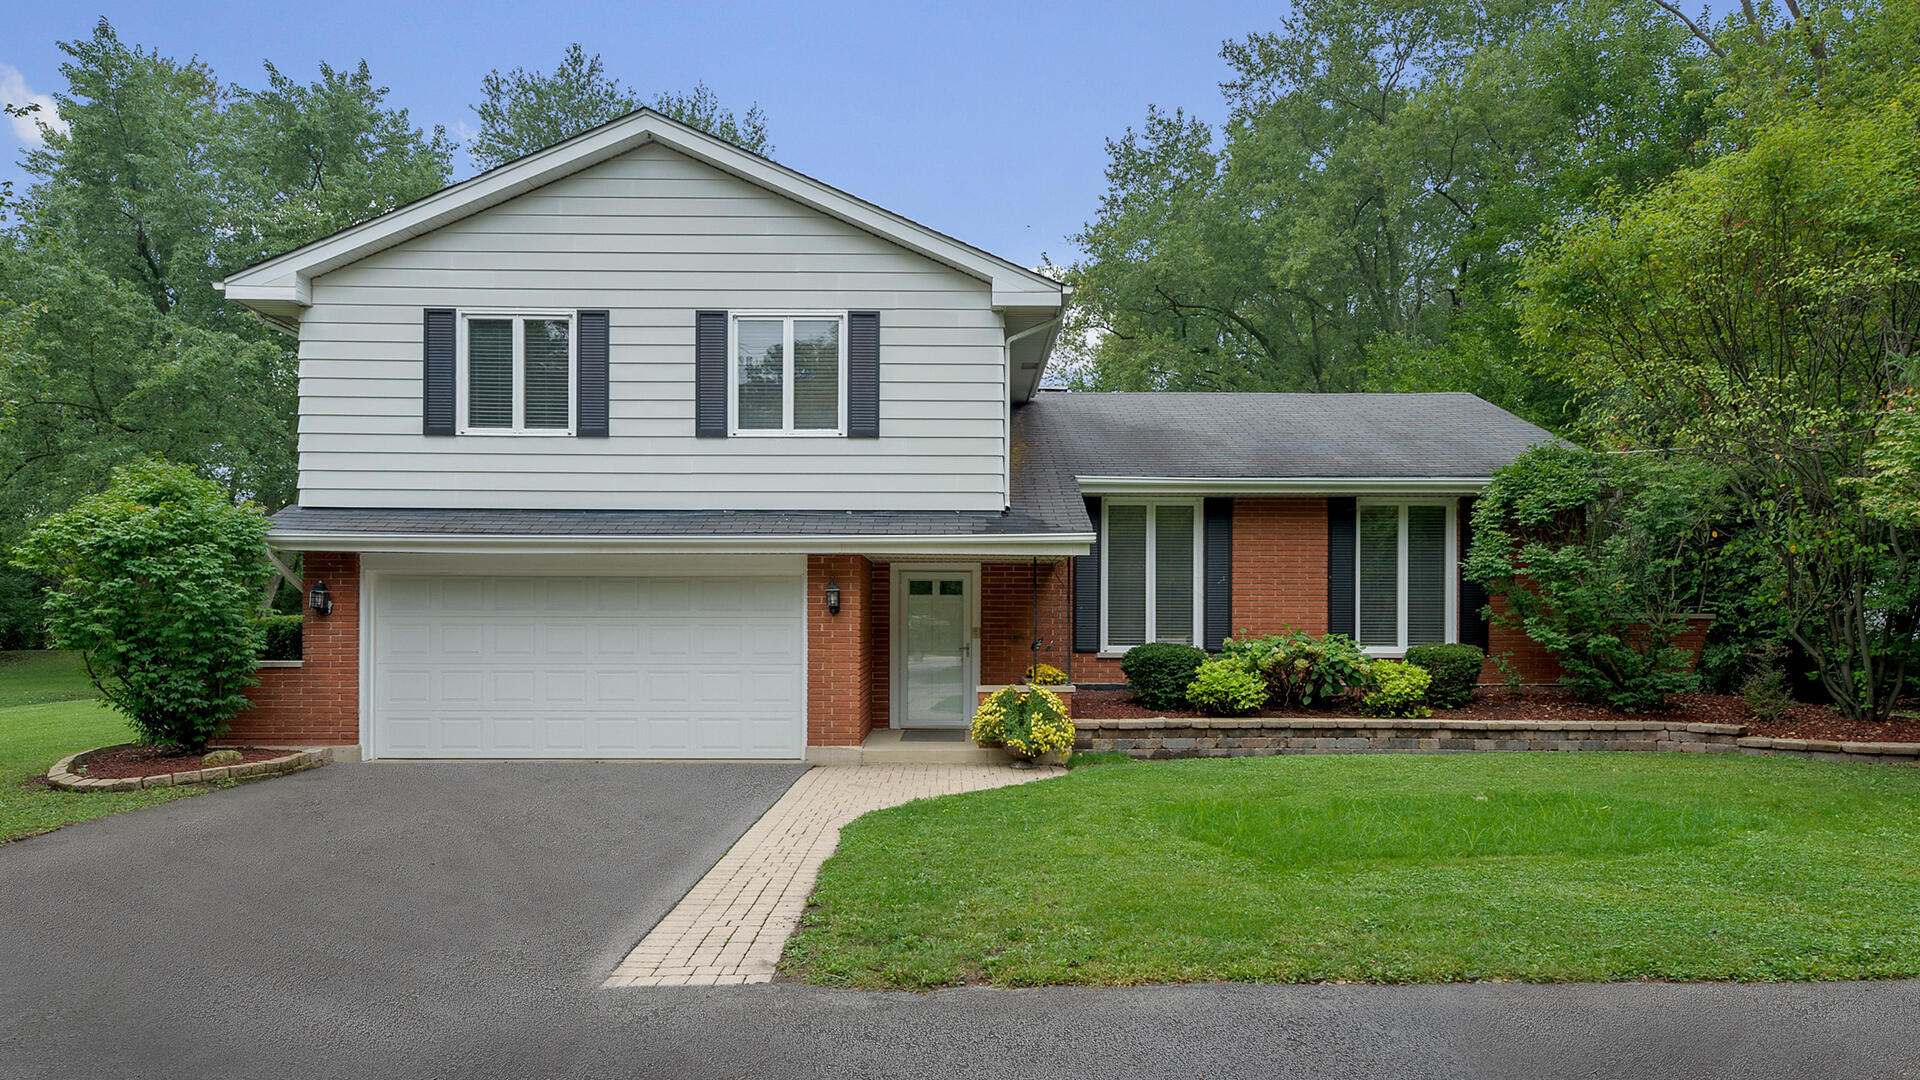 Photo for 8740 Lemont Road, Downers Grove, IL 60516 (MLS # 10858598)